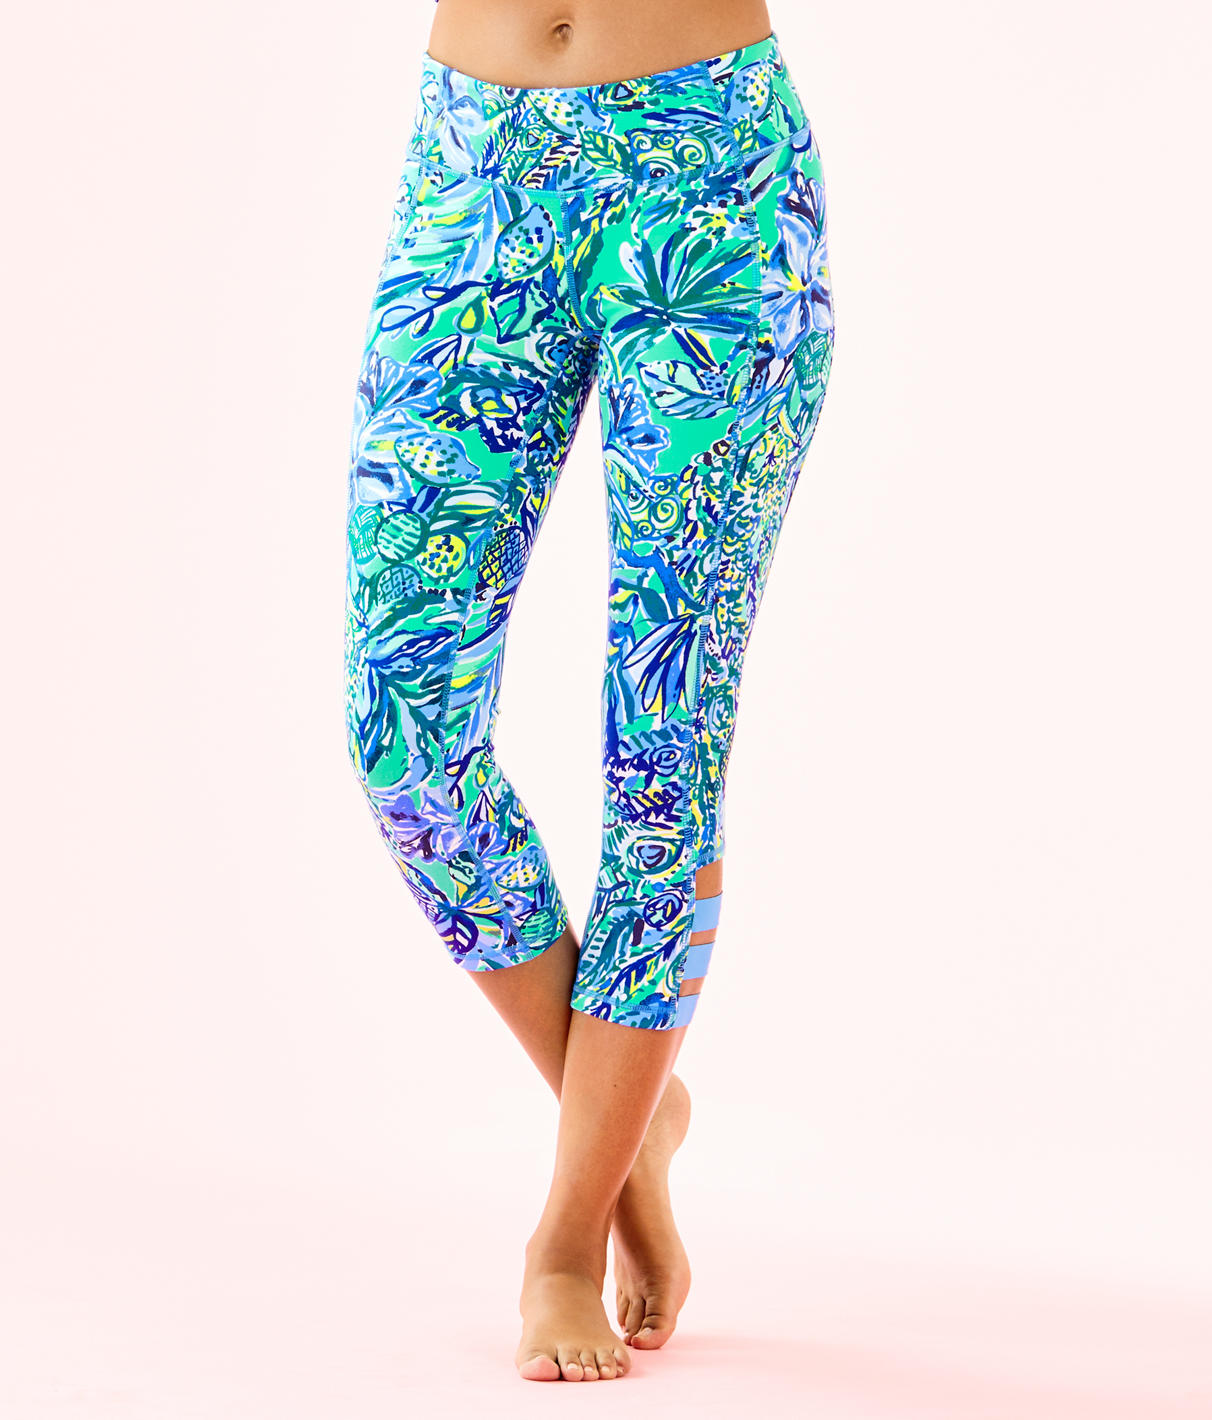 Lilly Pulitzer Lilly Pulitzer Womens UPF 50+ Luxletic 21